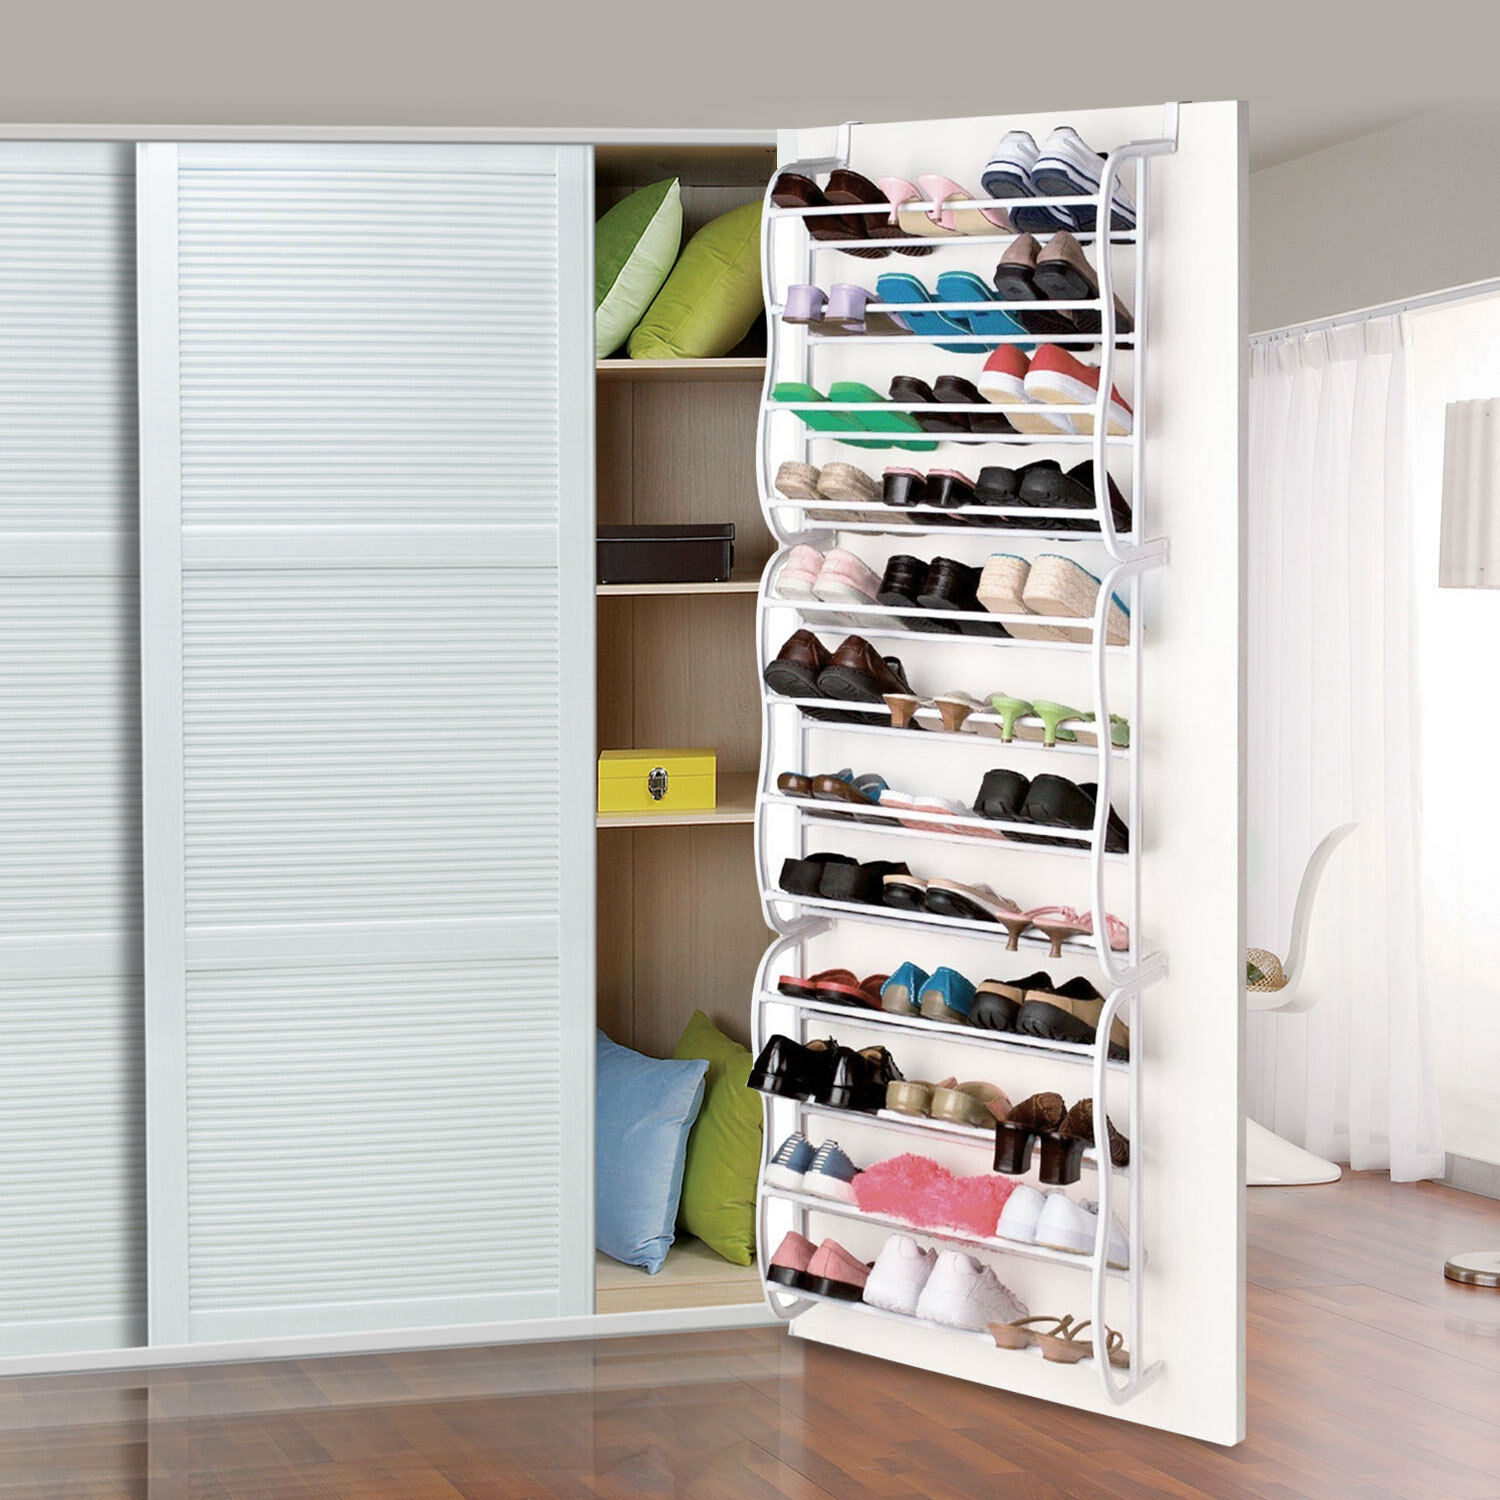 Details About Hanging Shoes Organizer Over The Door For 36 Pairs Shoe Rack Closet Space Saving